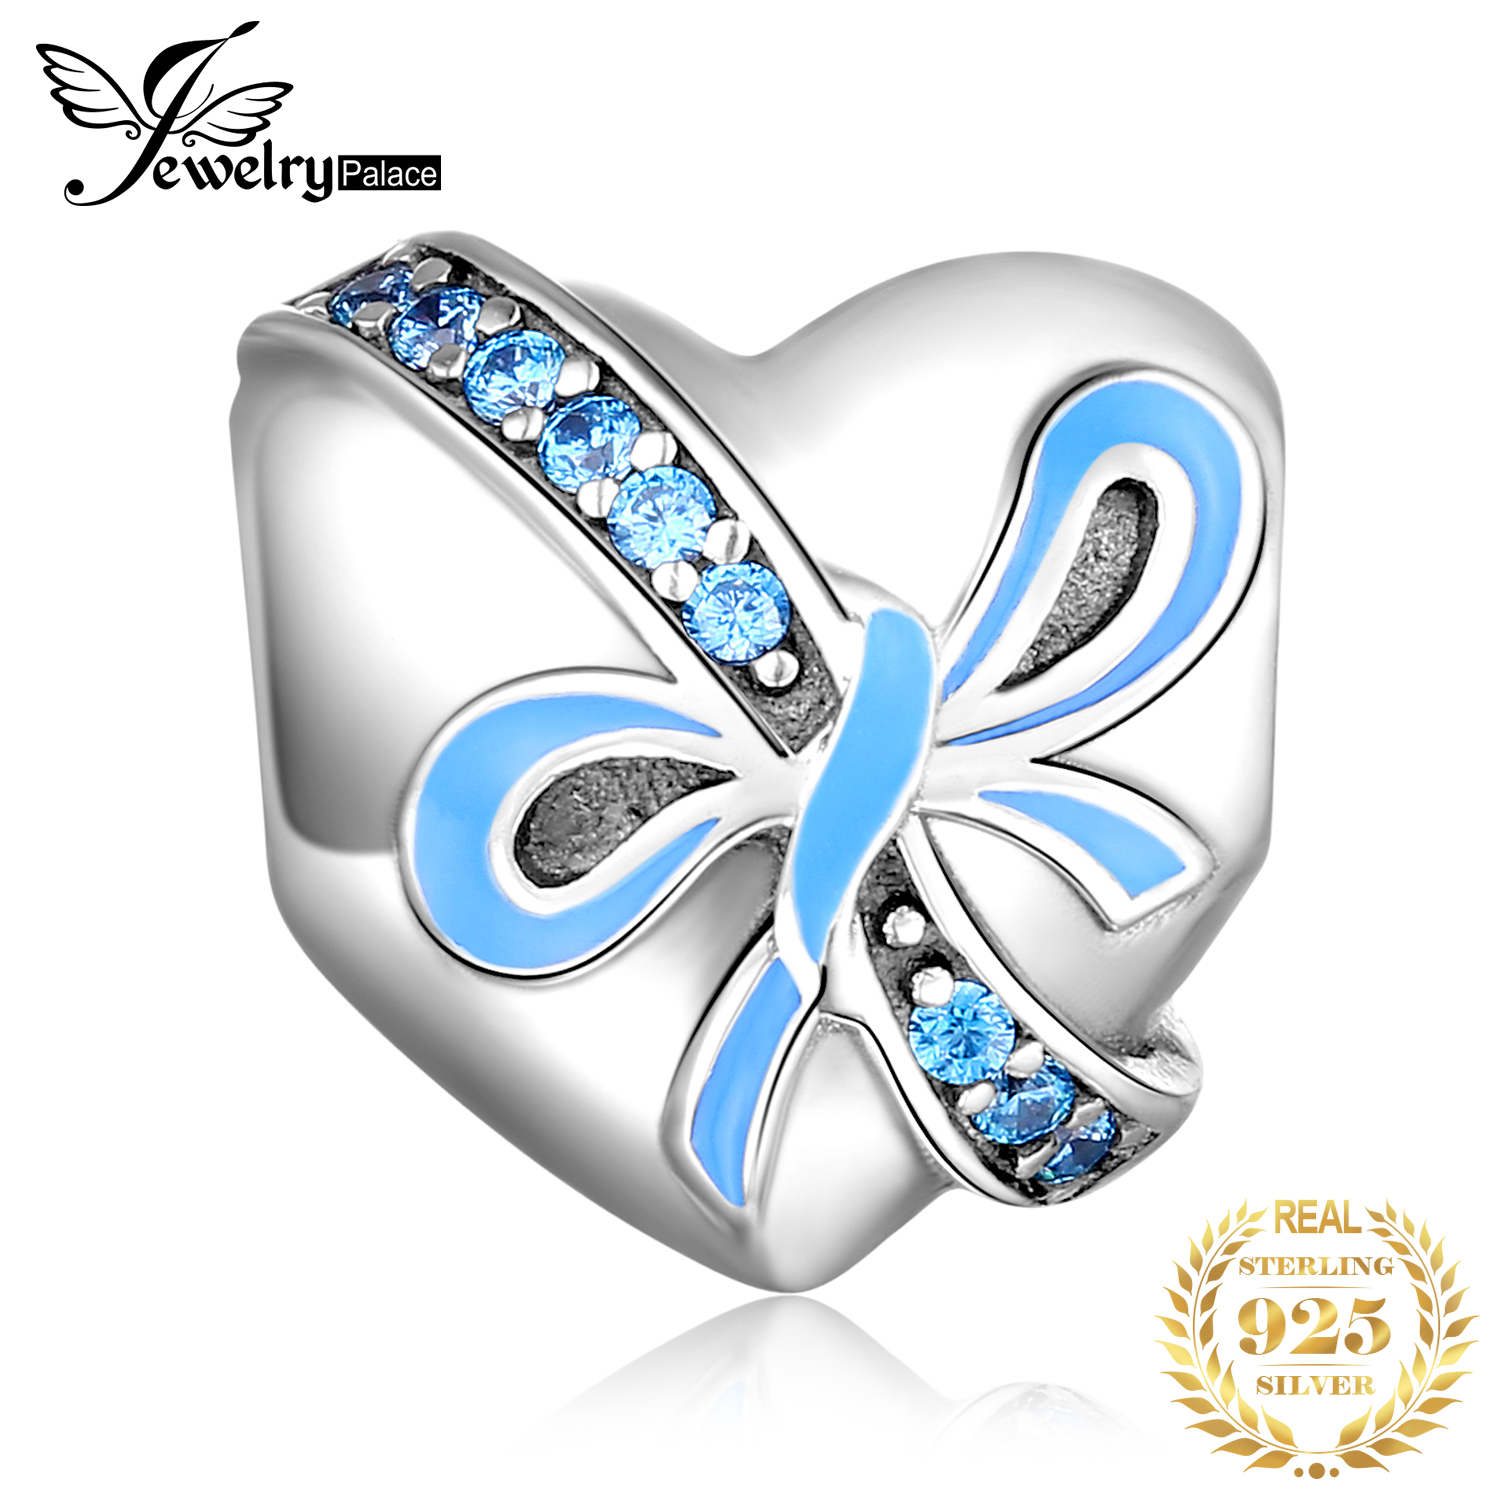 JewelryPalace Bowknot Heart 925 Sterling Silver Beads Charms Original Fit Bracelet original Jewelry Making